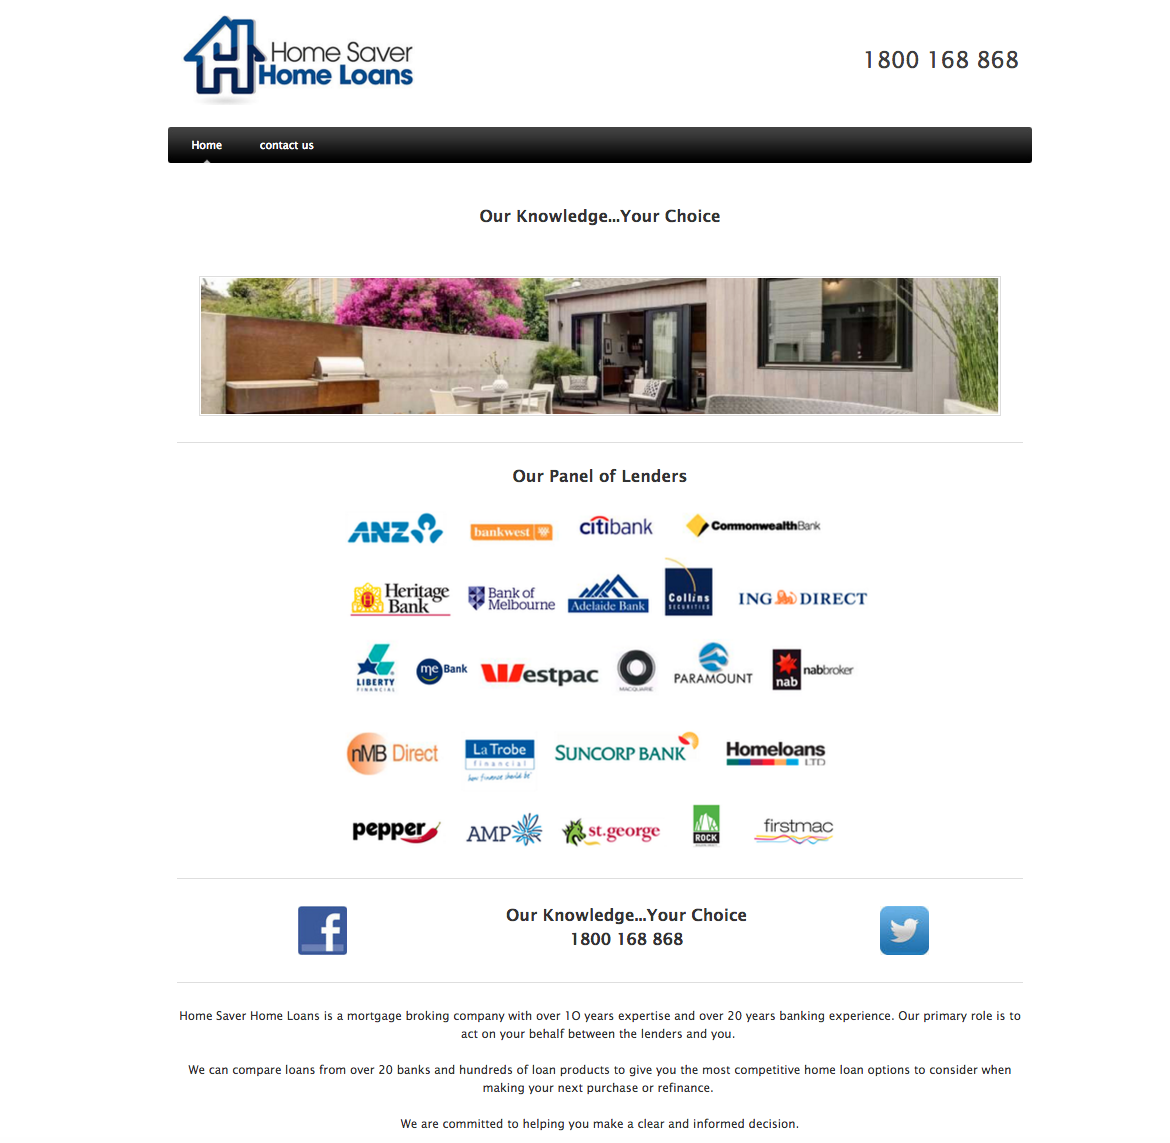 Website Design Home saver home loans old design